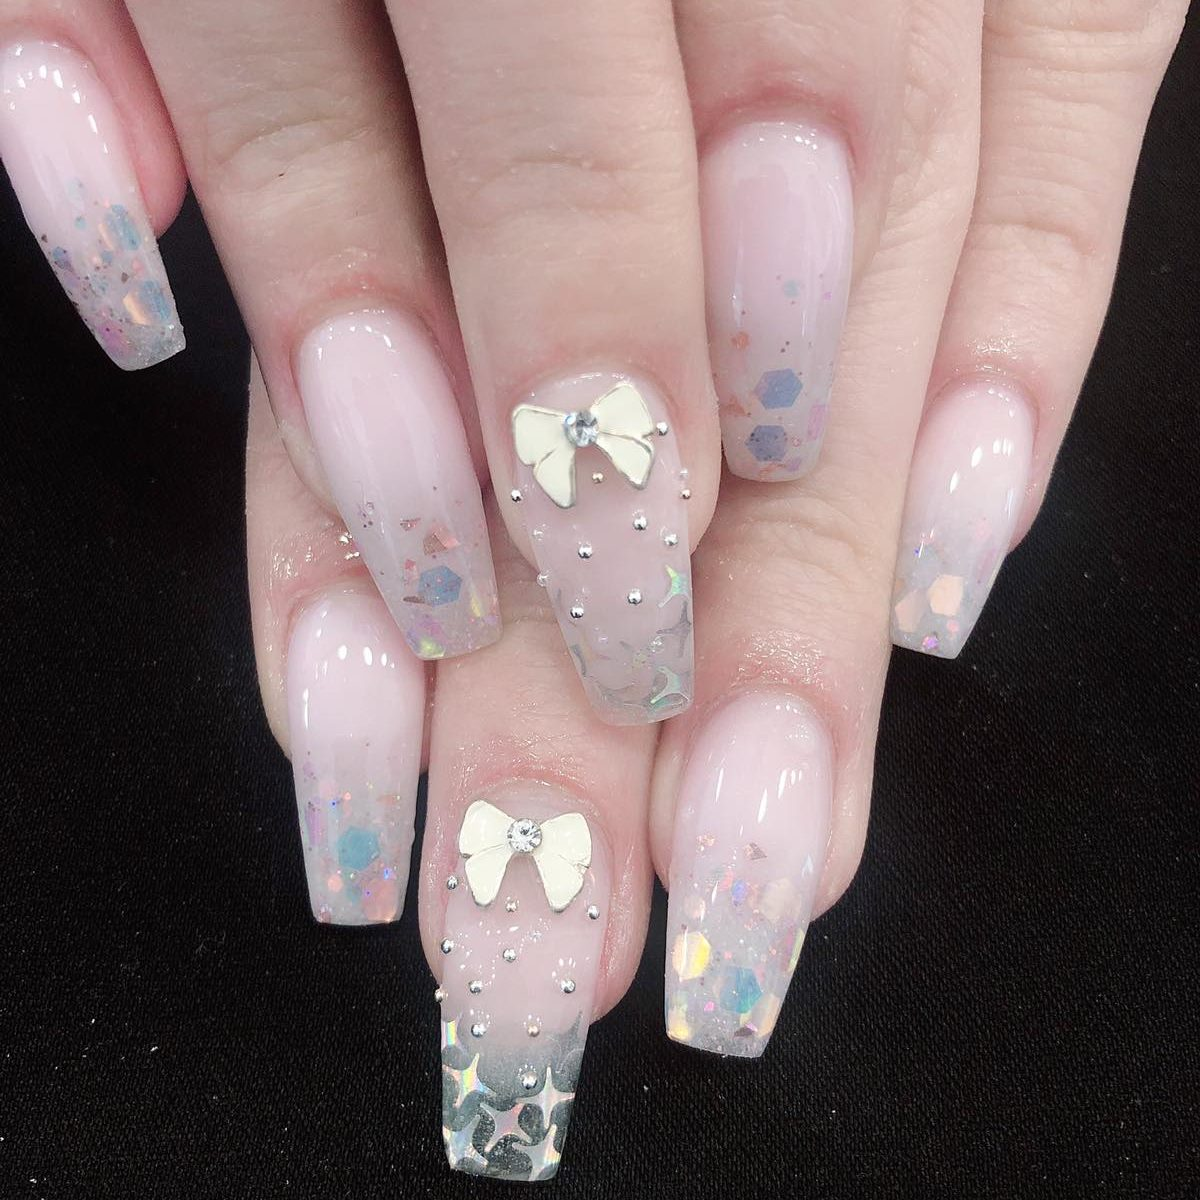 3D nail designs on coffin shape nail extensions